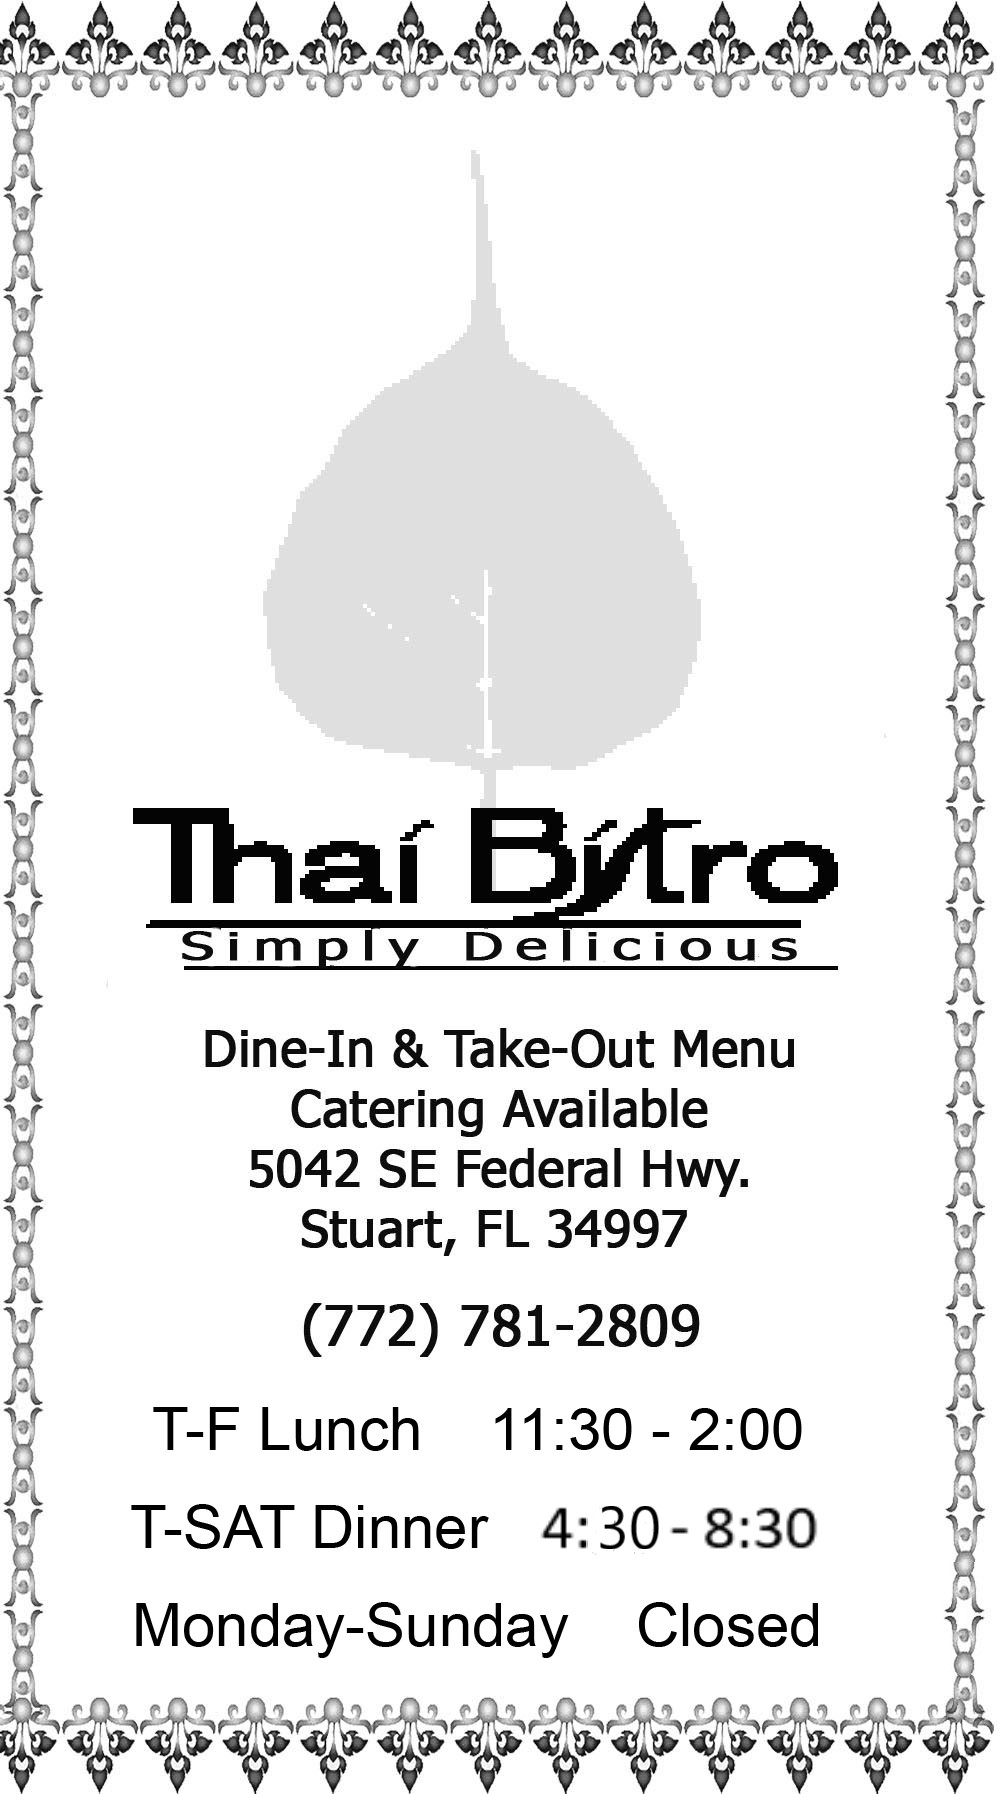 Menu front page with Logo, address & hours  Address 5042 SE Federal Highway, Stuart, FL  Hours Tuesday through thursday Lunch 11:30am - 2:30pm  Tuesday through Saturday dinner 4:30 pm - 9:30 pm Sunday dinner 4:30 pm - 9:00pm Monday = closed